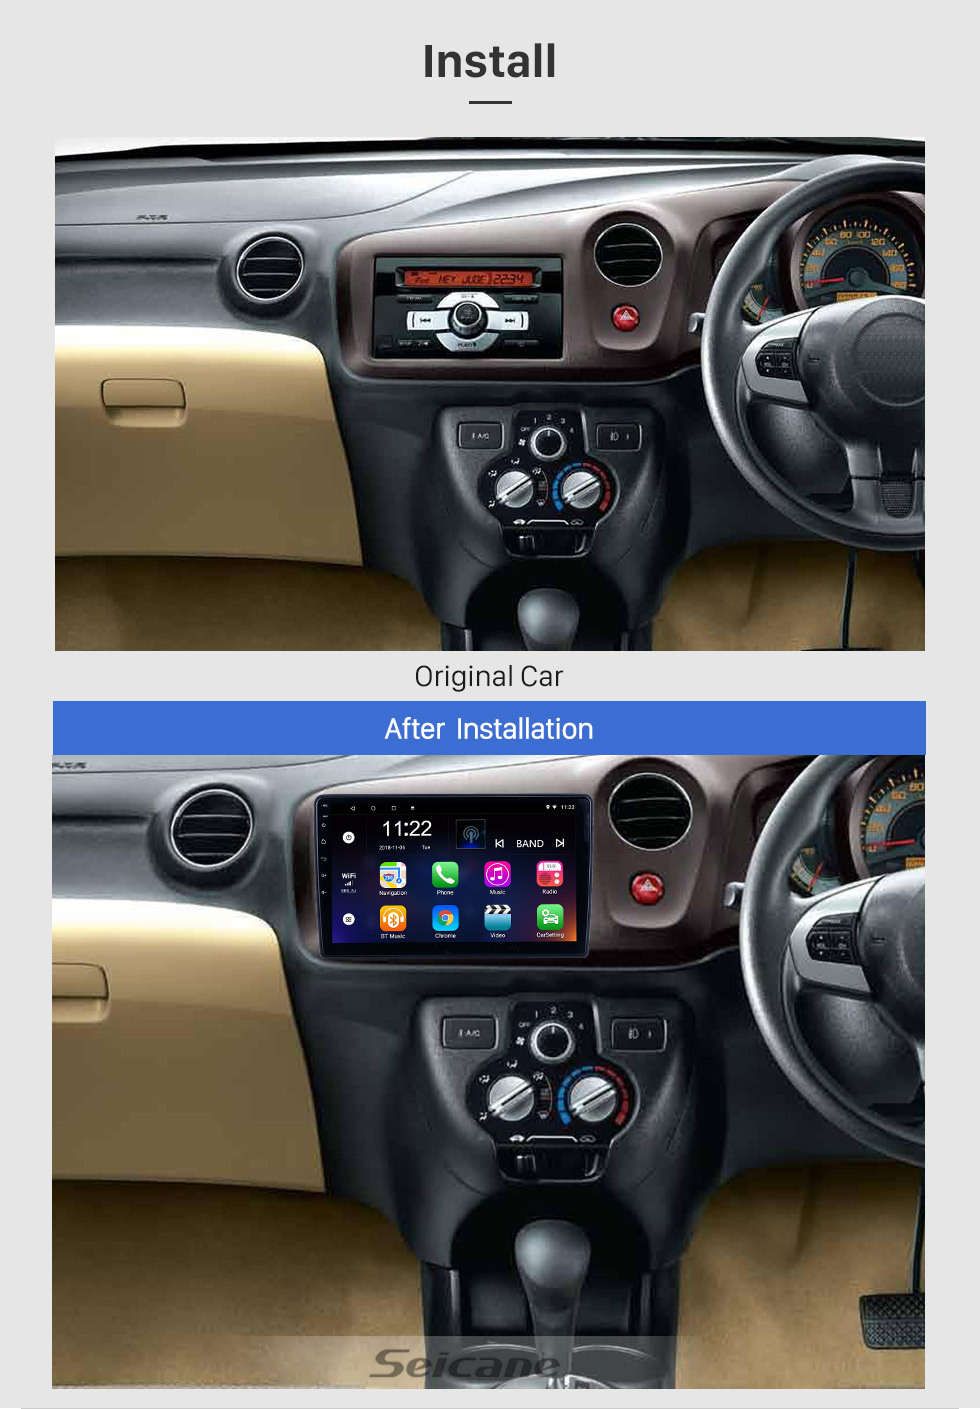 Seicane For 2012 Honda Brio Radio 10.1 inch Android 10.0 HD Touchscreen GPS Navigation System with Bluetooth support Carplay OBD2